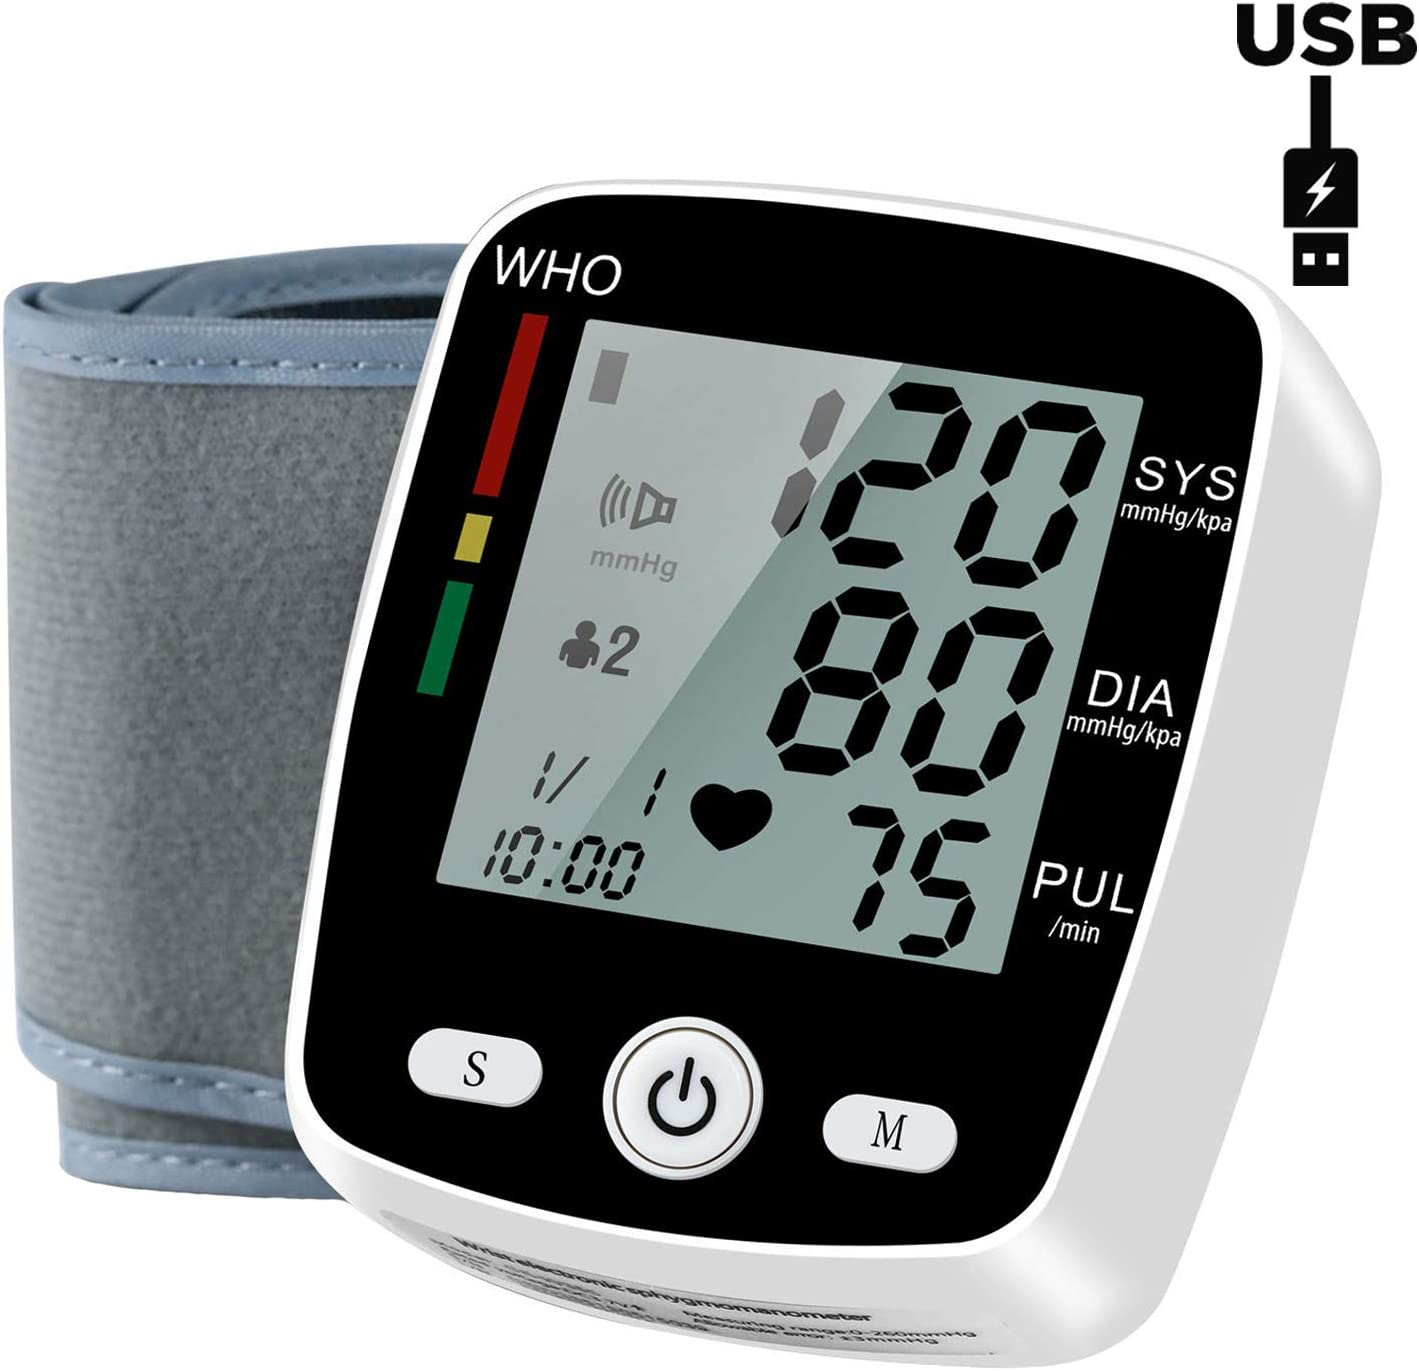 Automatic Wrist Blood Pressure Monitor with USB Charging – Blood Pressure Cuff with LCD Display – BP Monitor, BP Cuff for Detecting Irregular Heartbeat – Includes Intelligent Voice Function